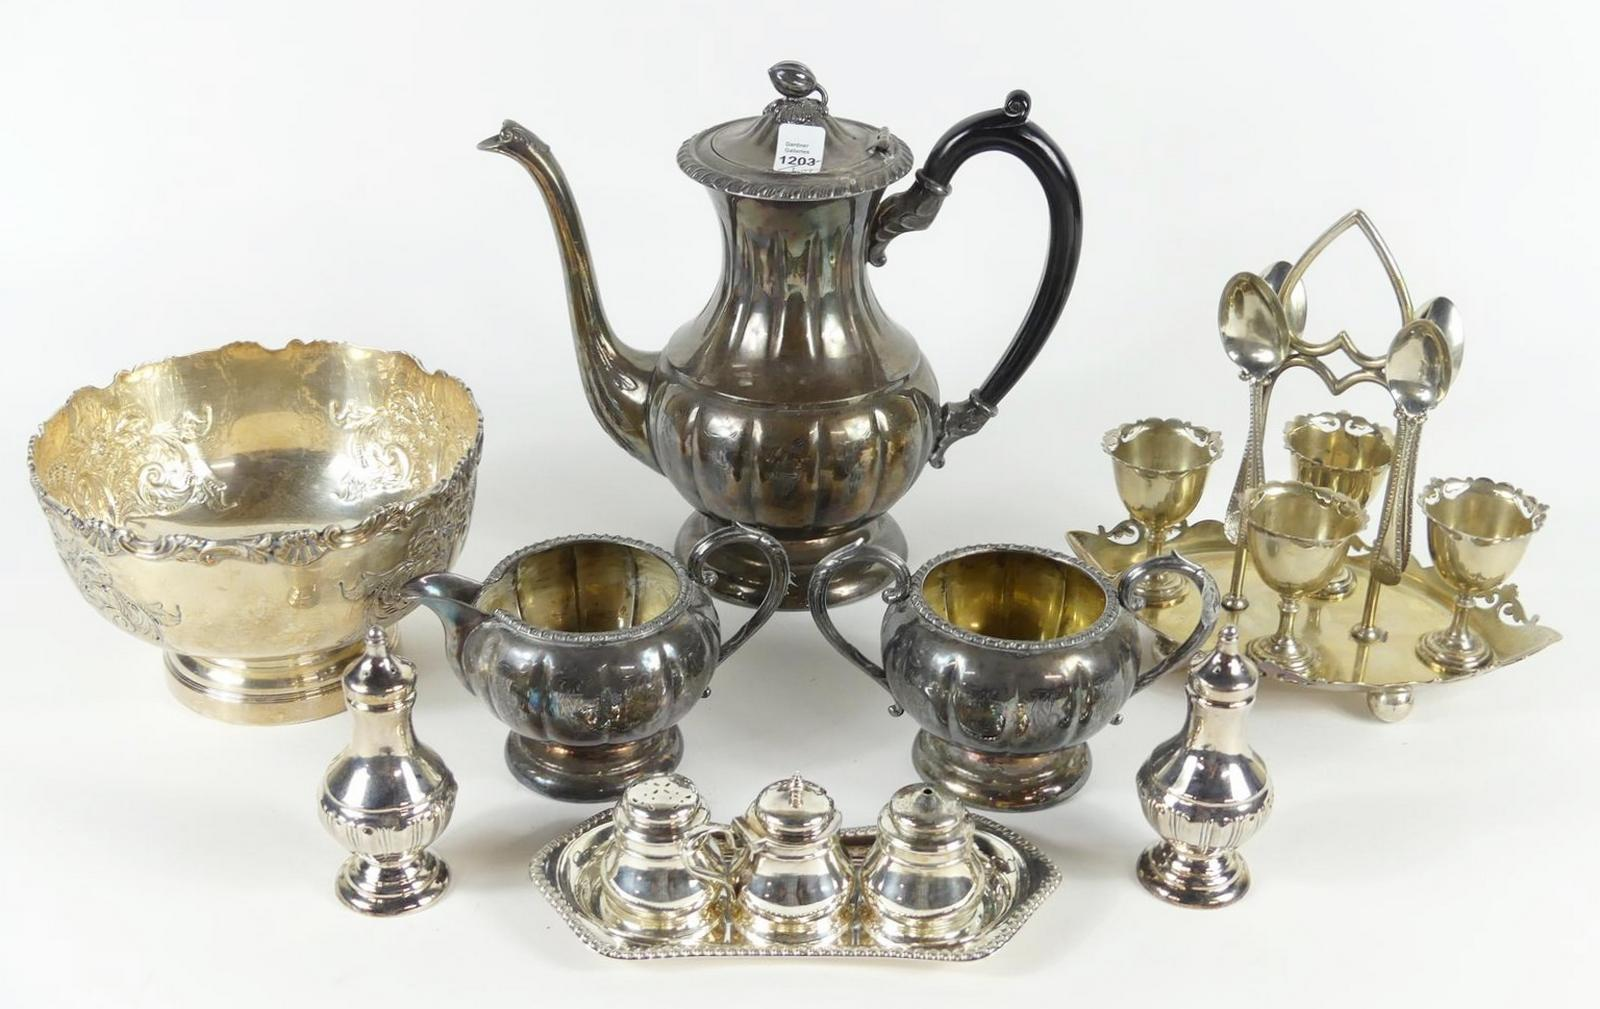 SILVERPLATED ITEMS